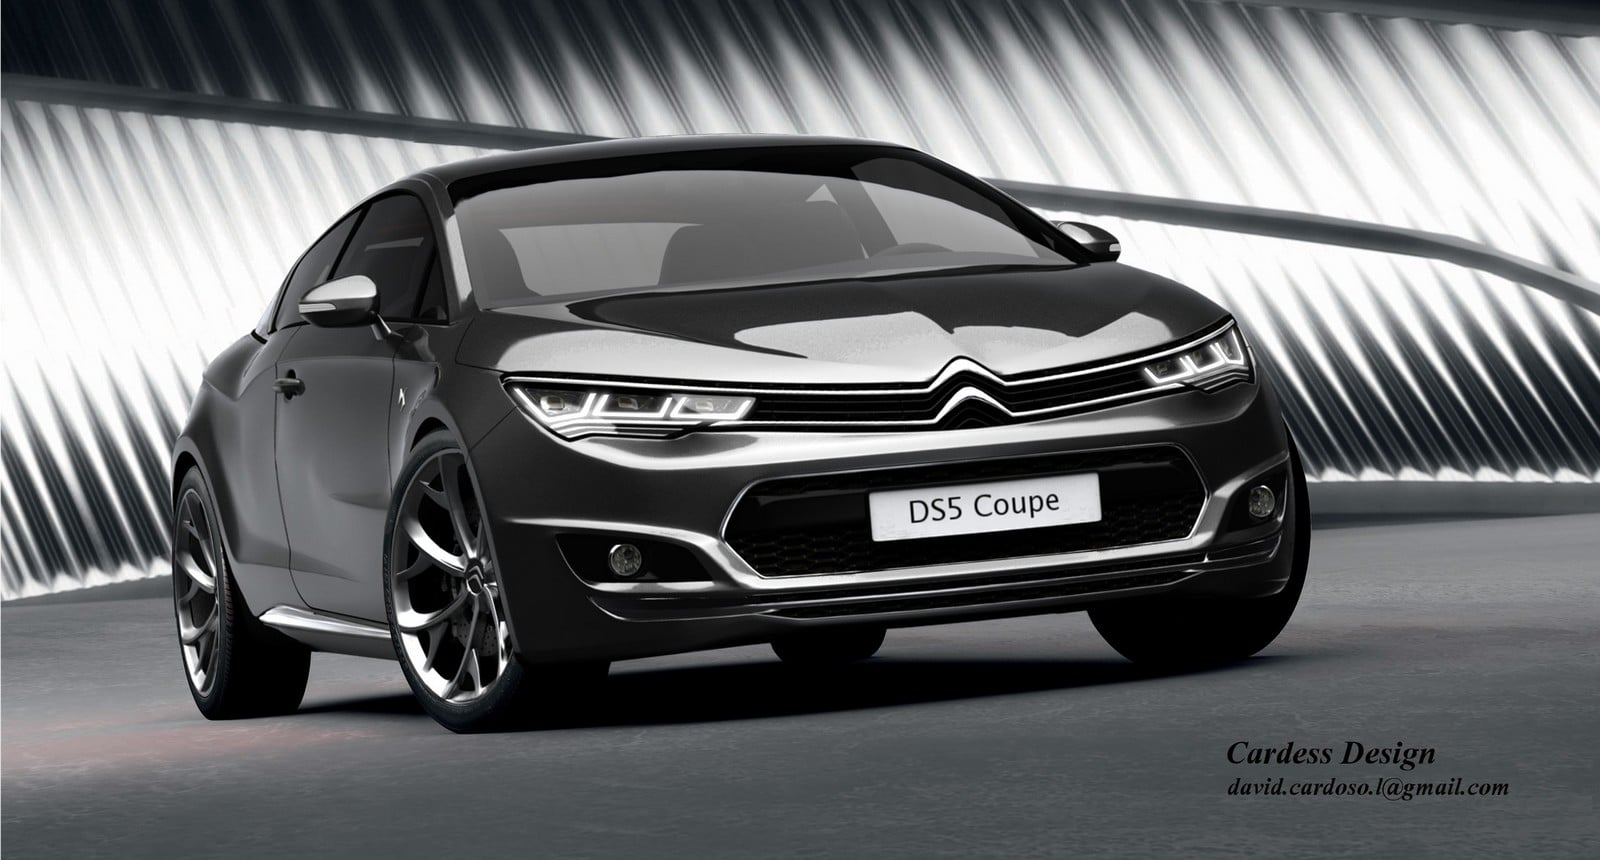 Illustration d'une Citroën DS5 Coupé : plausible ?